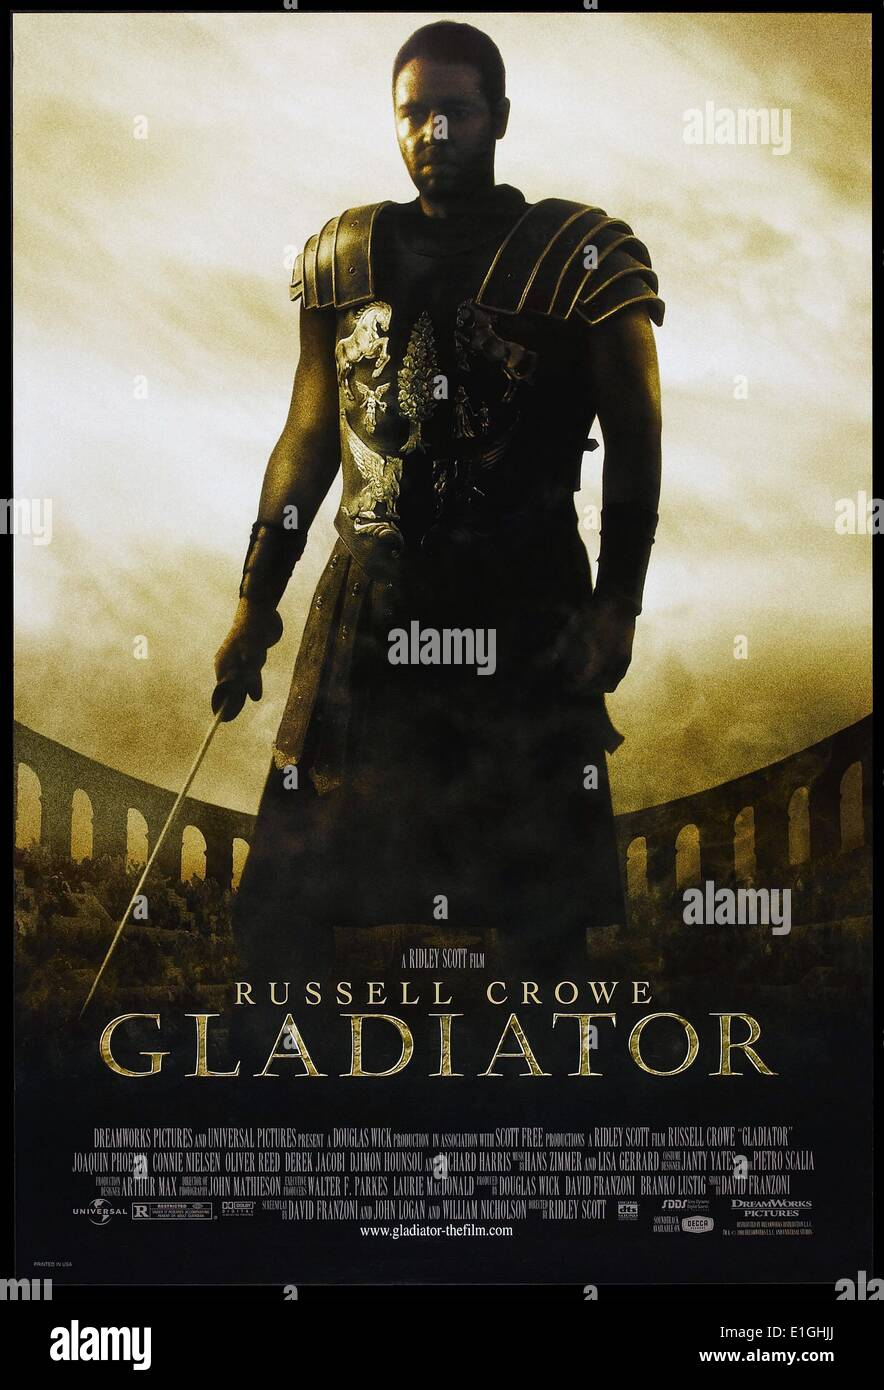 'Gladiator' a 2000 British-American epic historical drama film starring Russell Crowe, Joaquin Phoenix, Connie Nielsen, Ralf - Stock Image